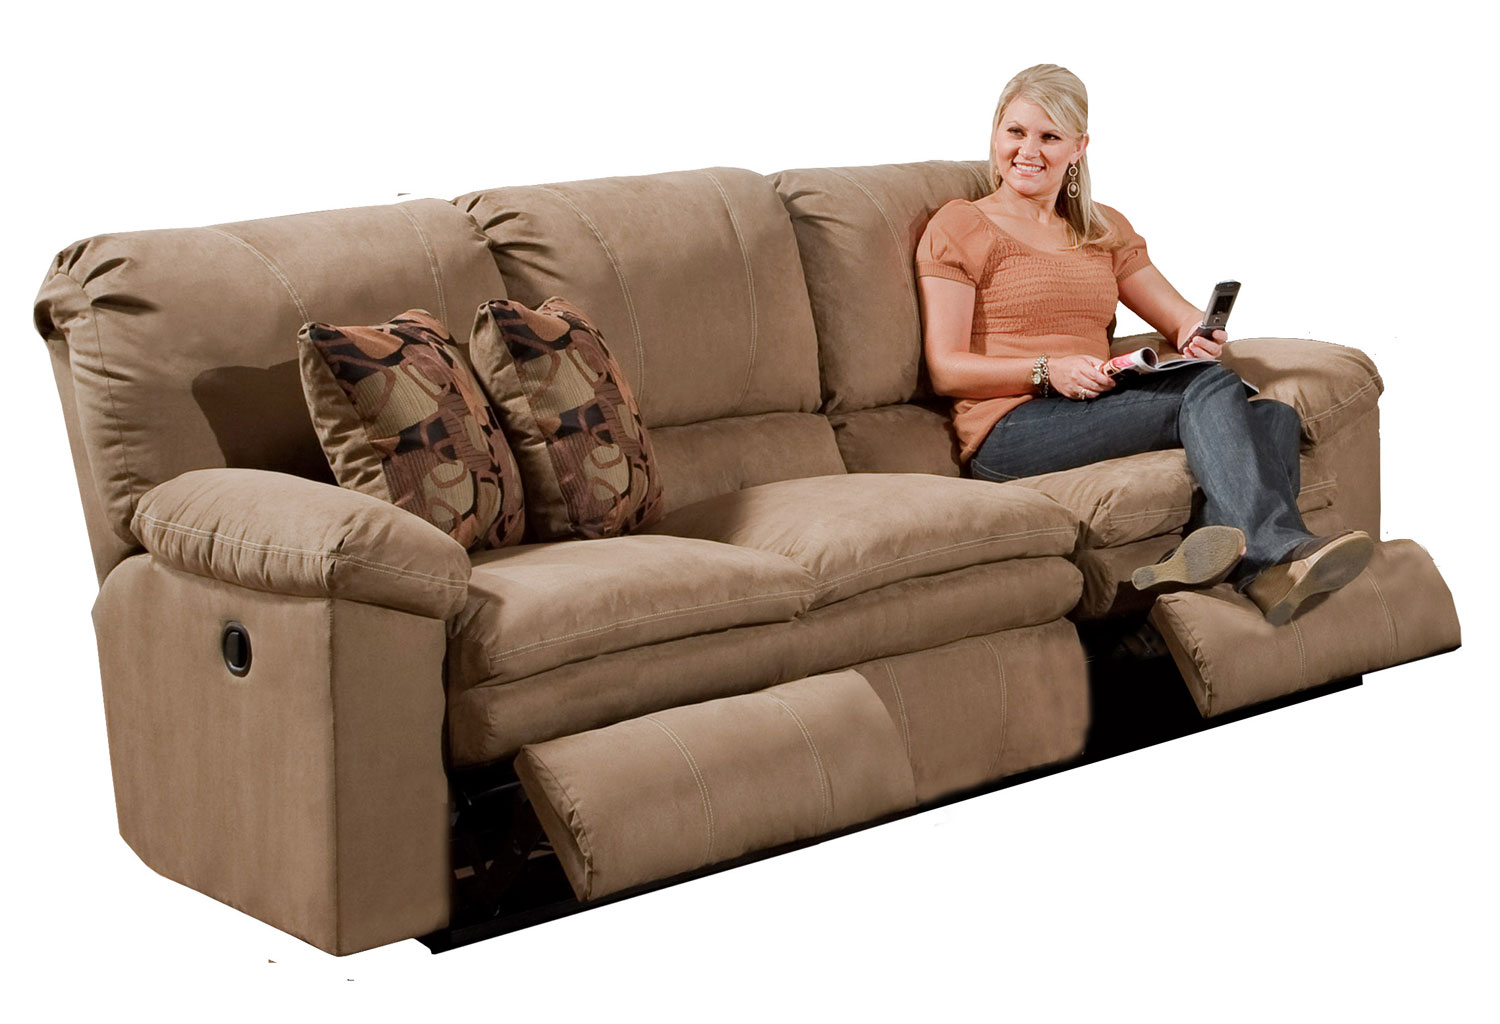 CatNapper Impulse Power Reclining Sofa - Cafe